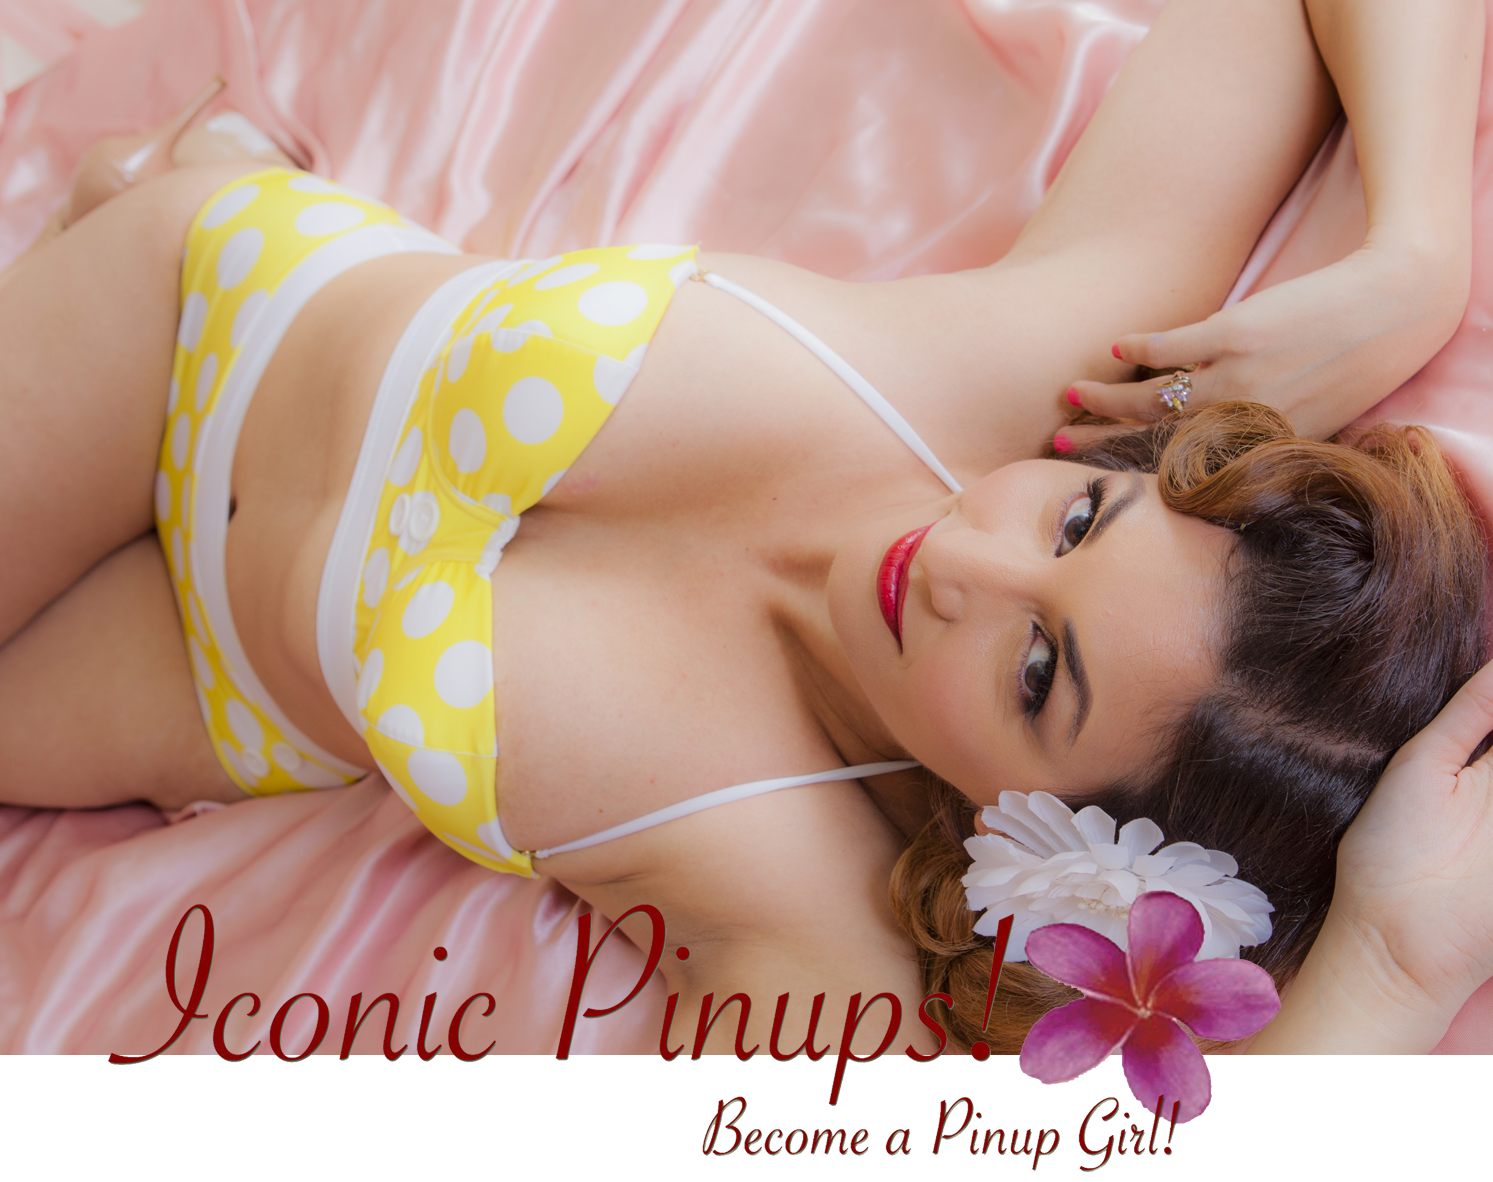 pinup-shoot_iconicpinupspsd_edited.jpg